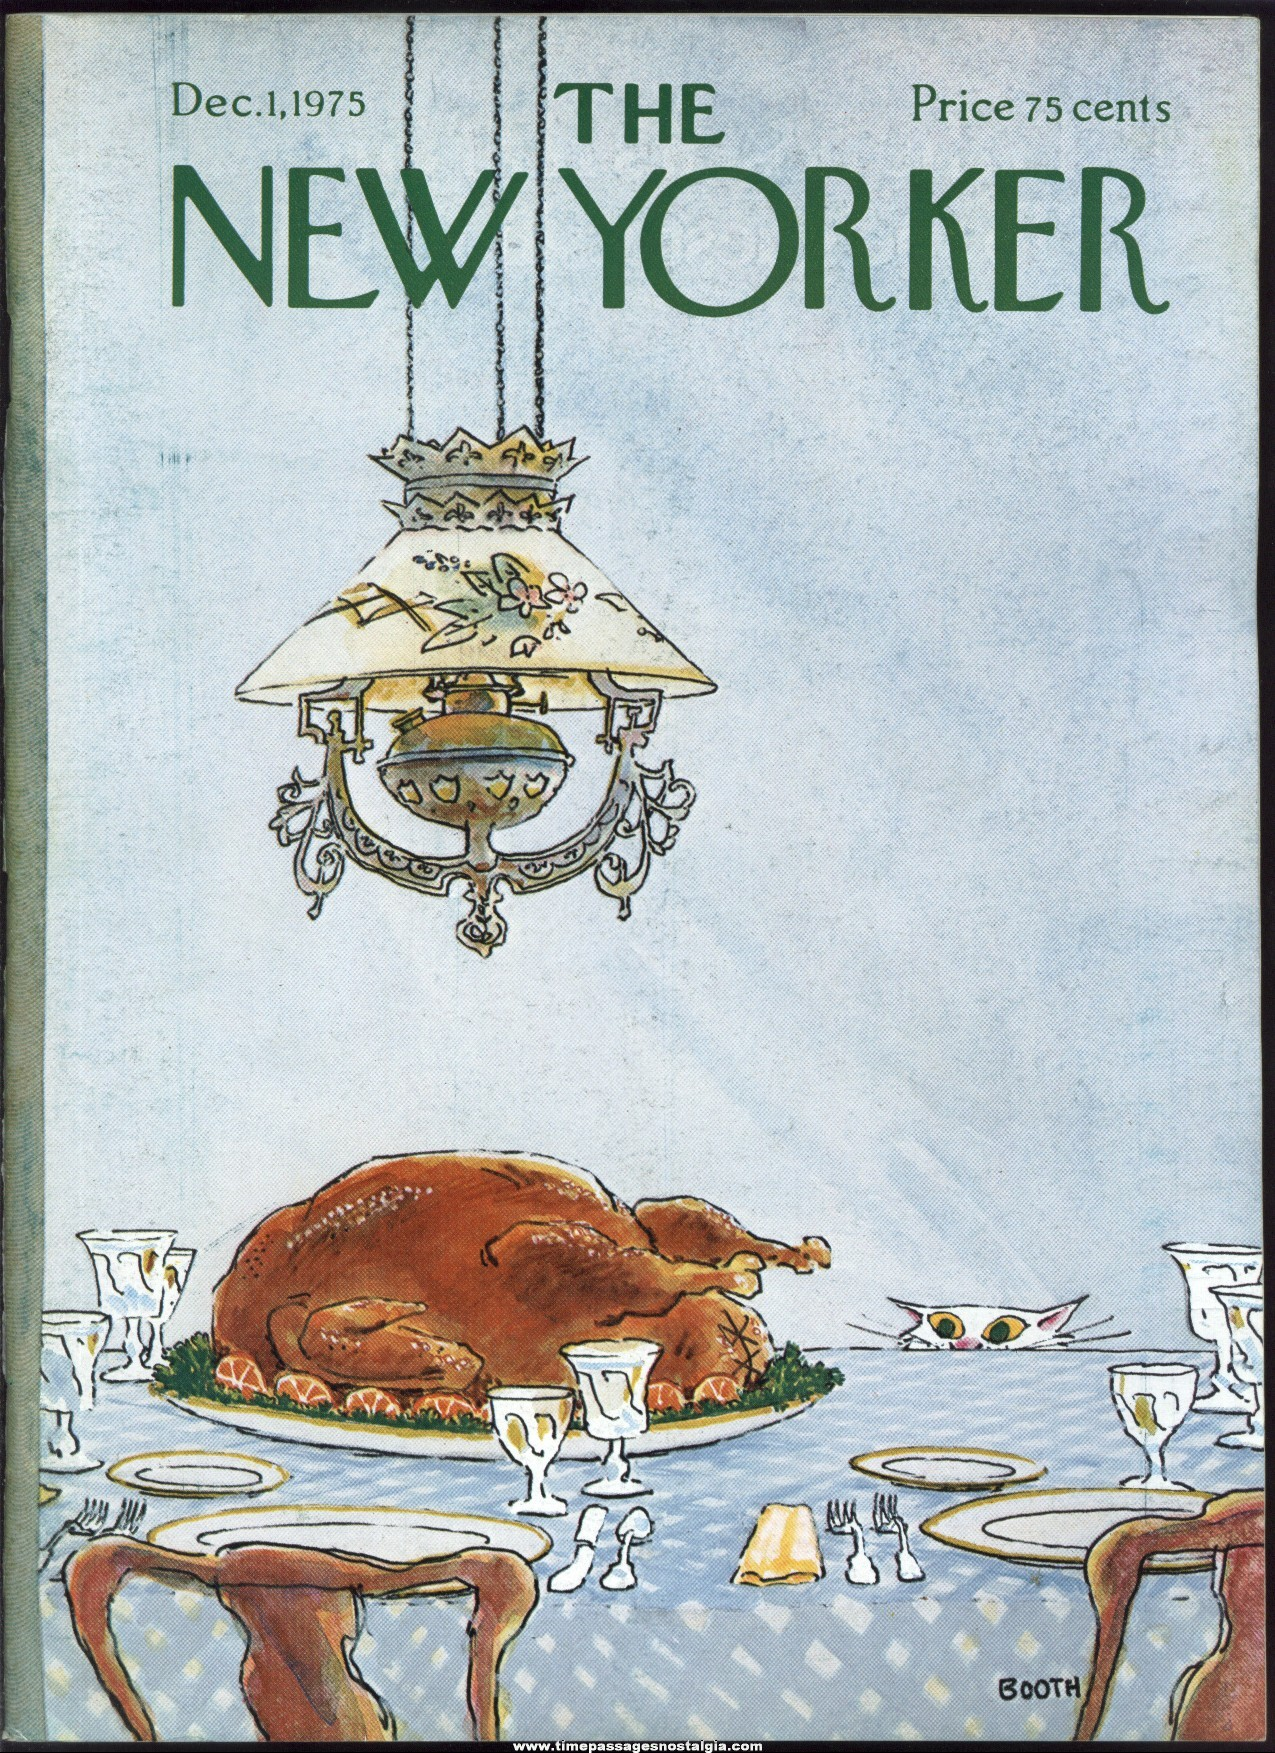 New Yorker Magazine - December 1, 1975 - Cover by George Booth